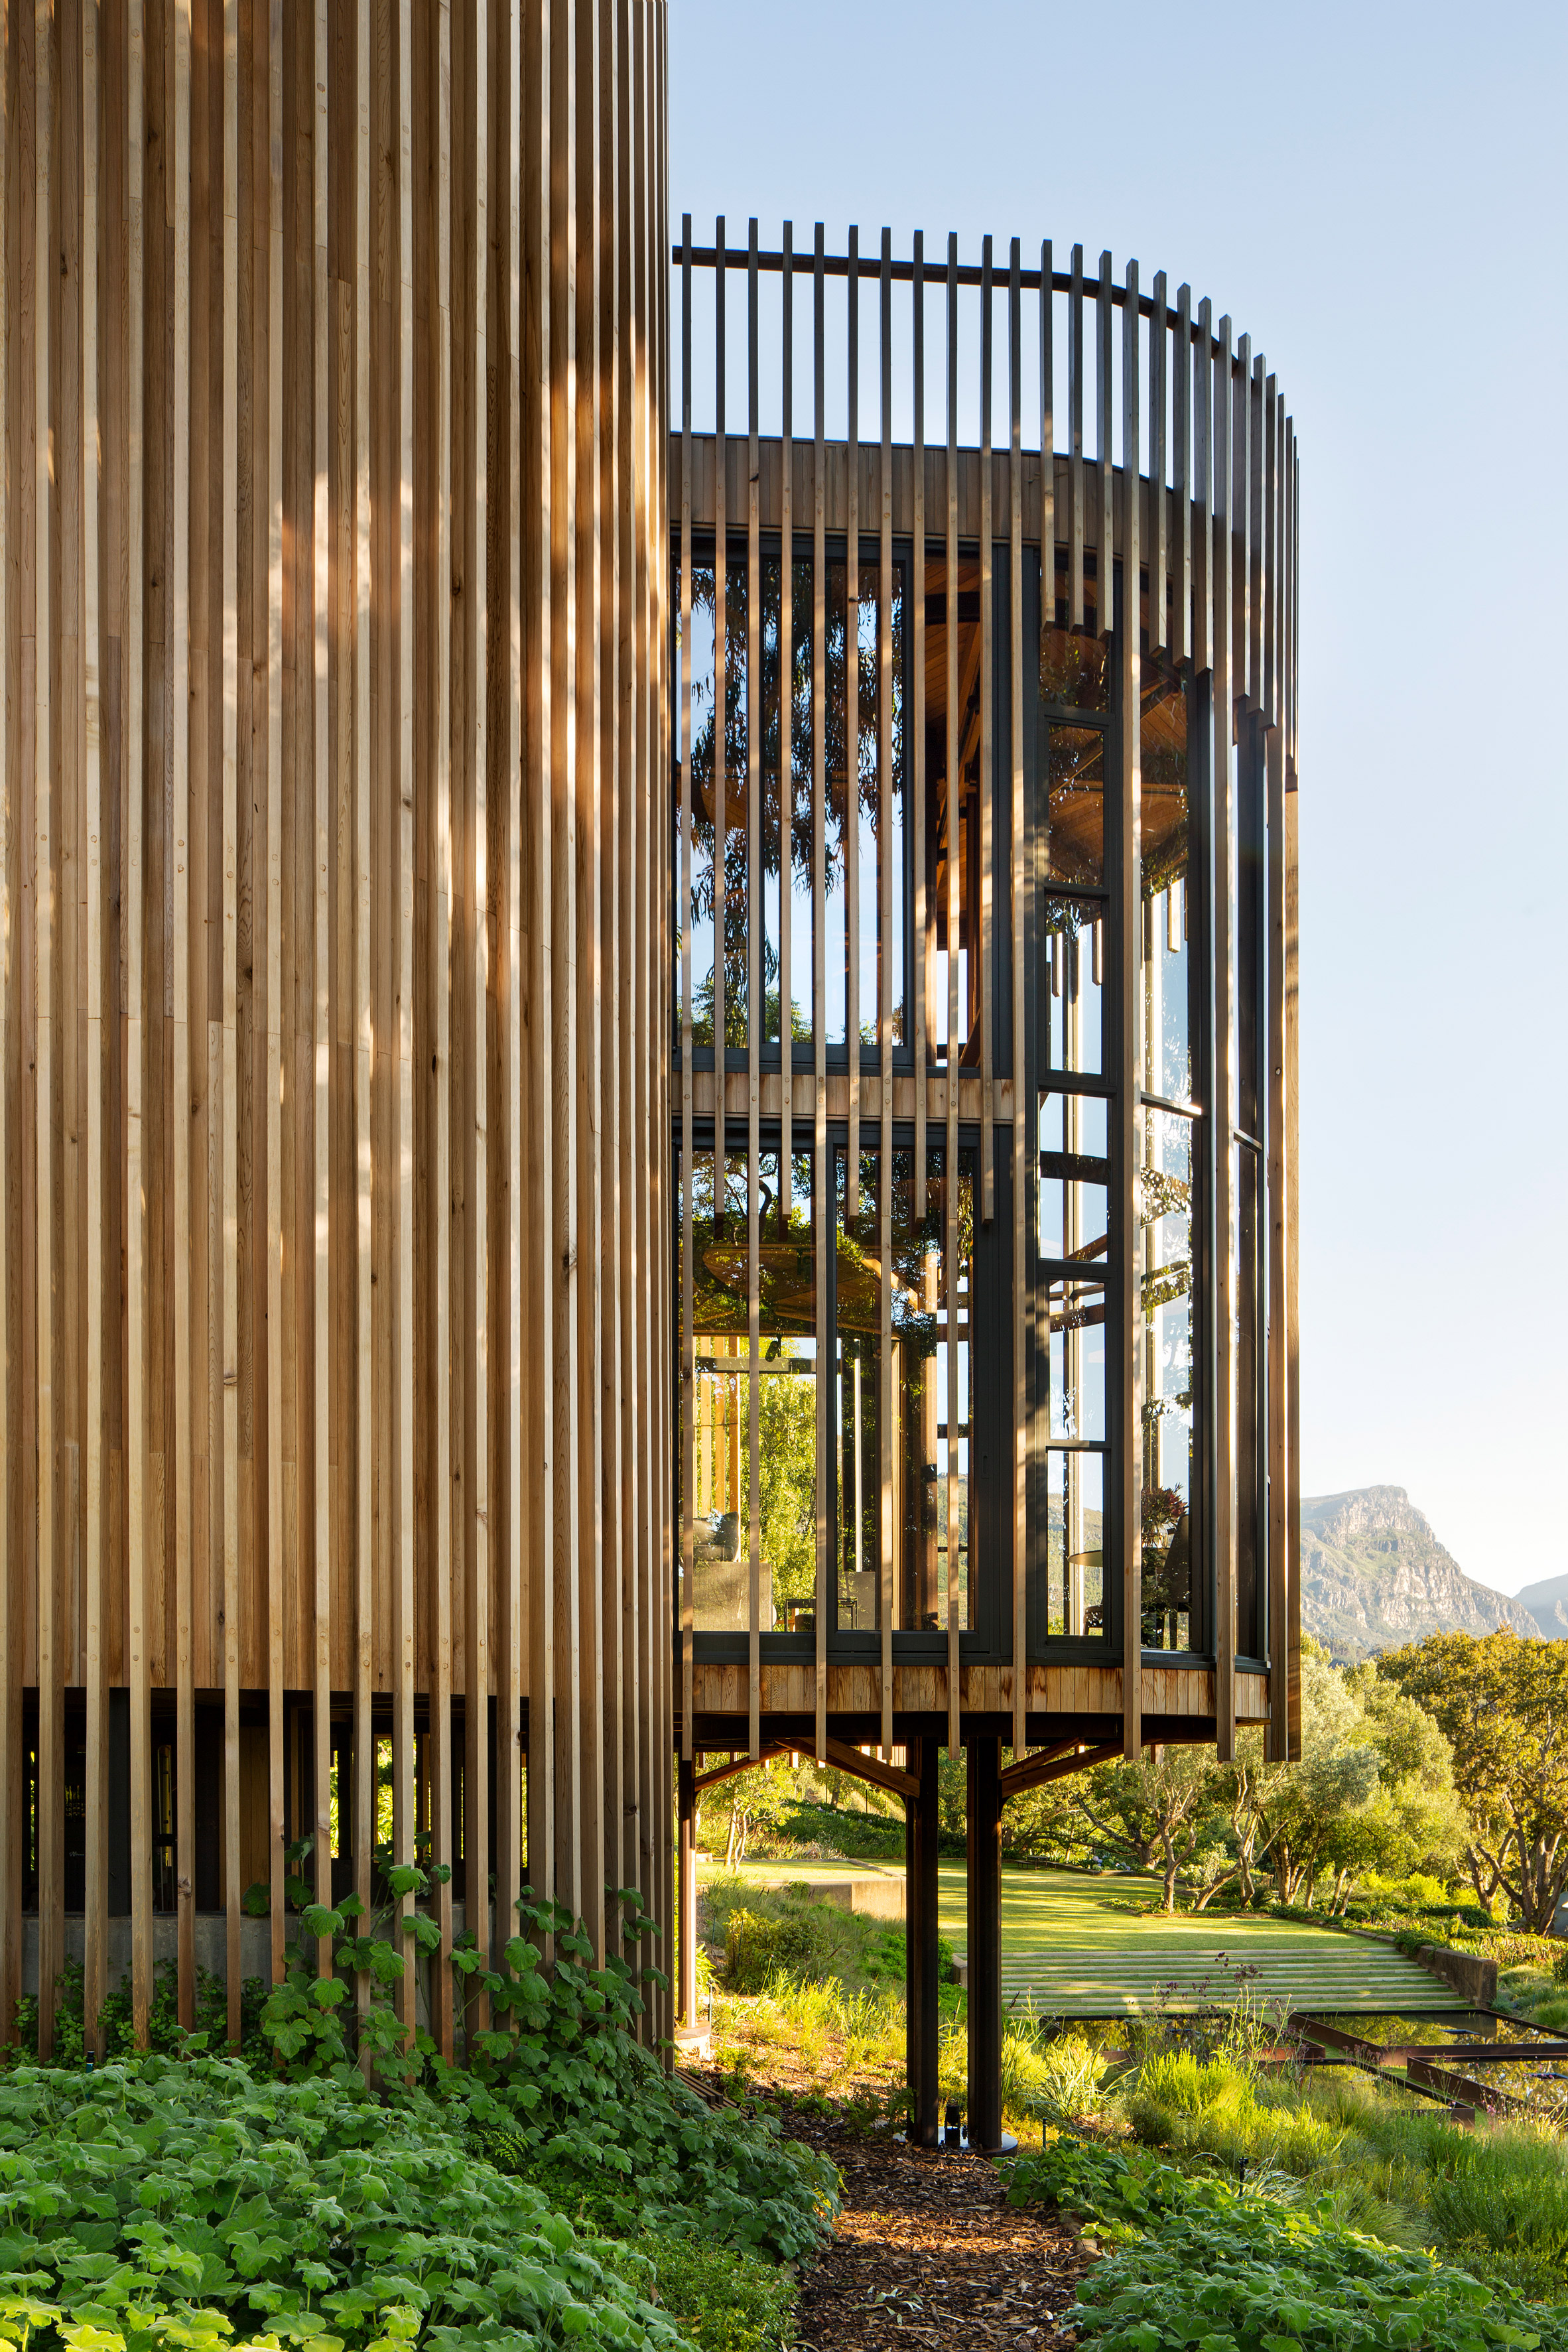 paarman-tree-house-by-mv-architecture-residential_dezeen_2364_col_13.jpg